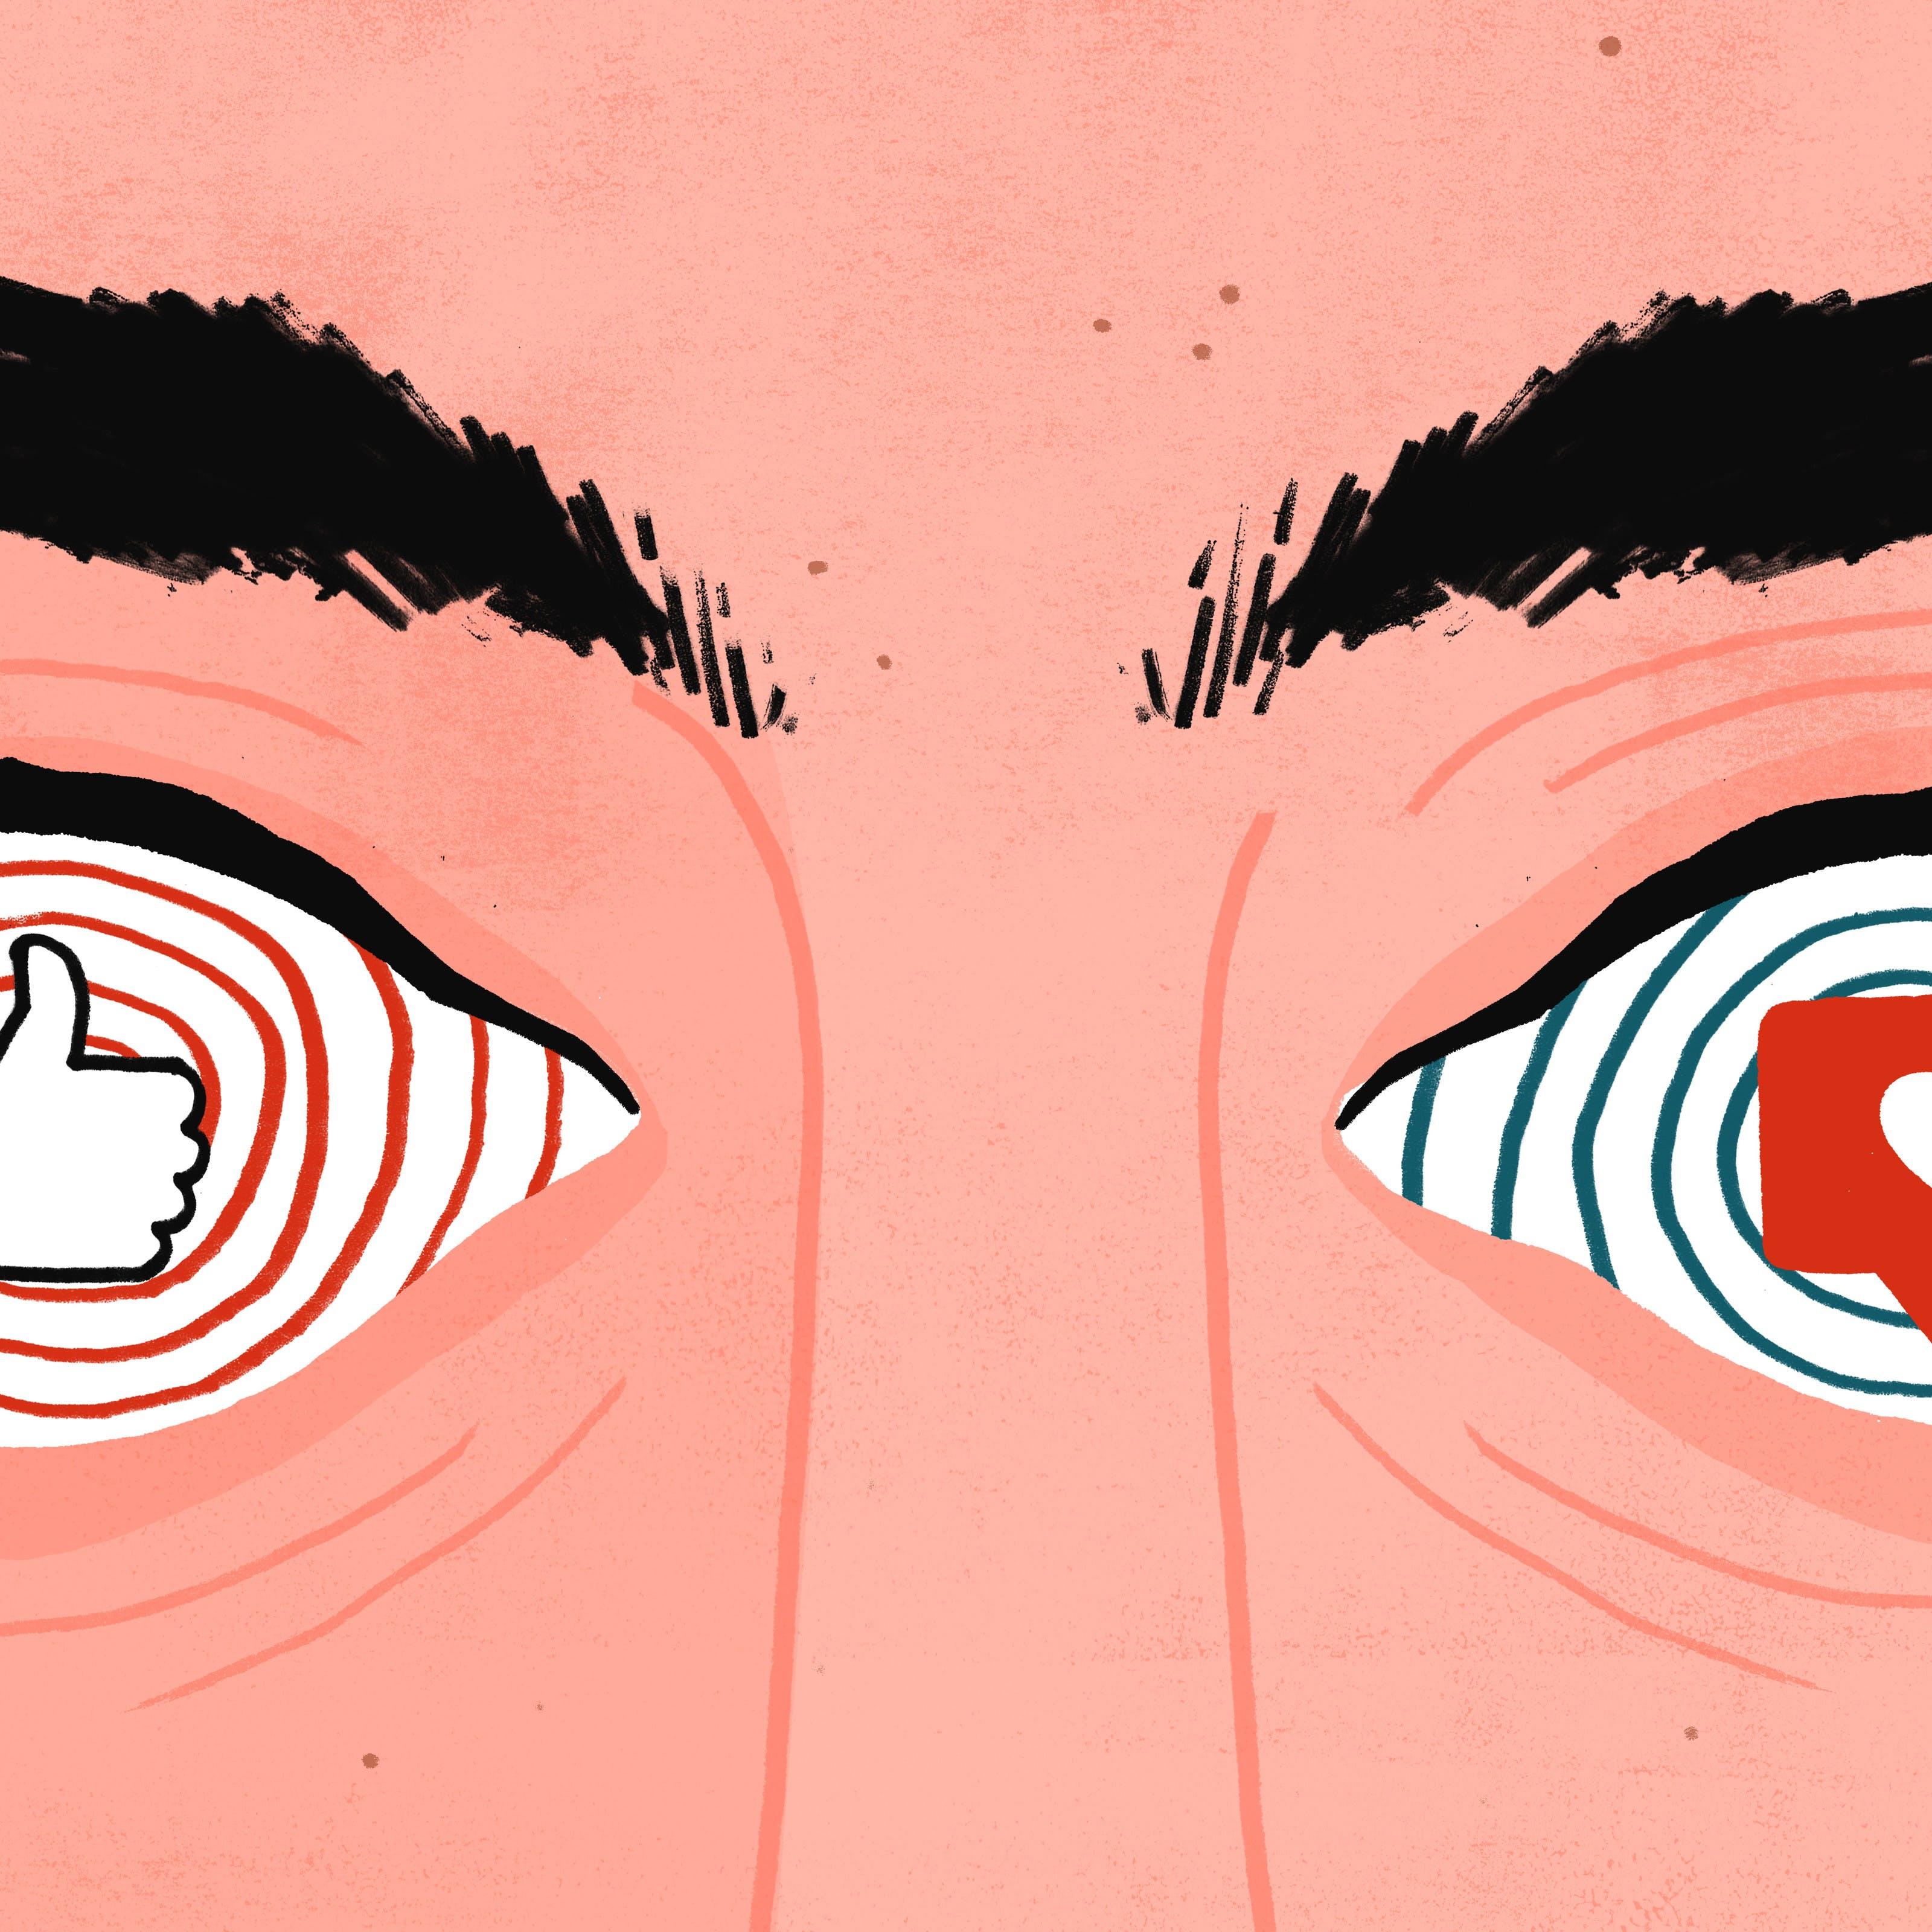 A person's eyes have been replaced with hypnotic spirals containing facebook and instagram 'likes'.